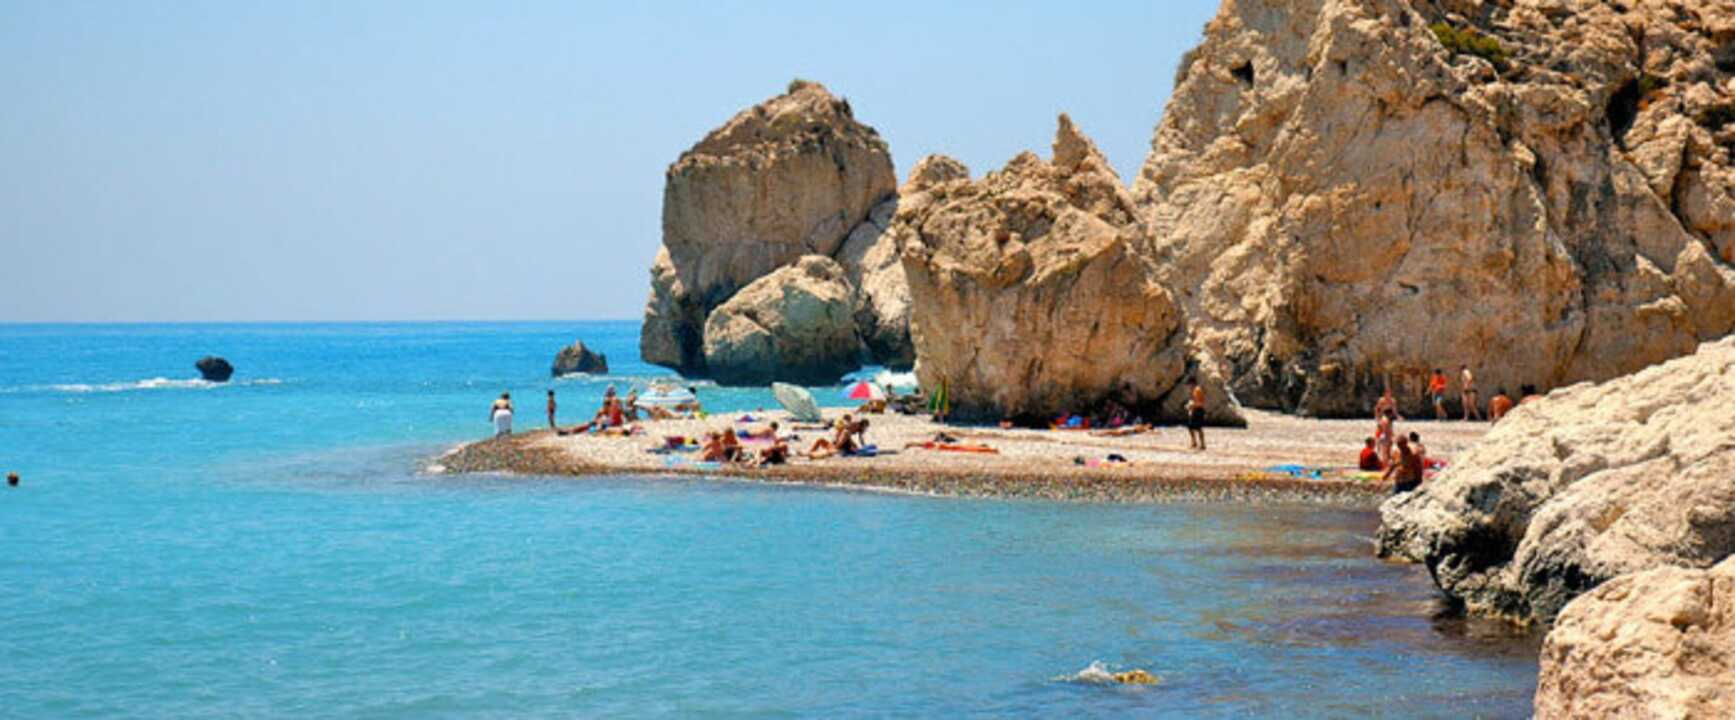 Cheap Holidays To Ayia Napa On The Beach